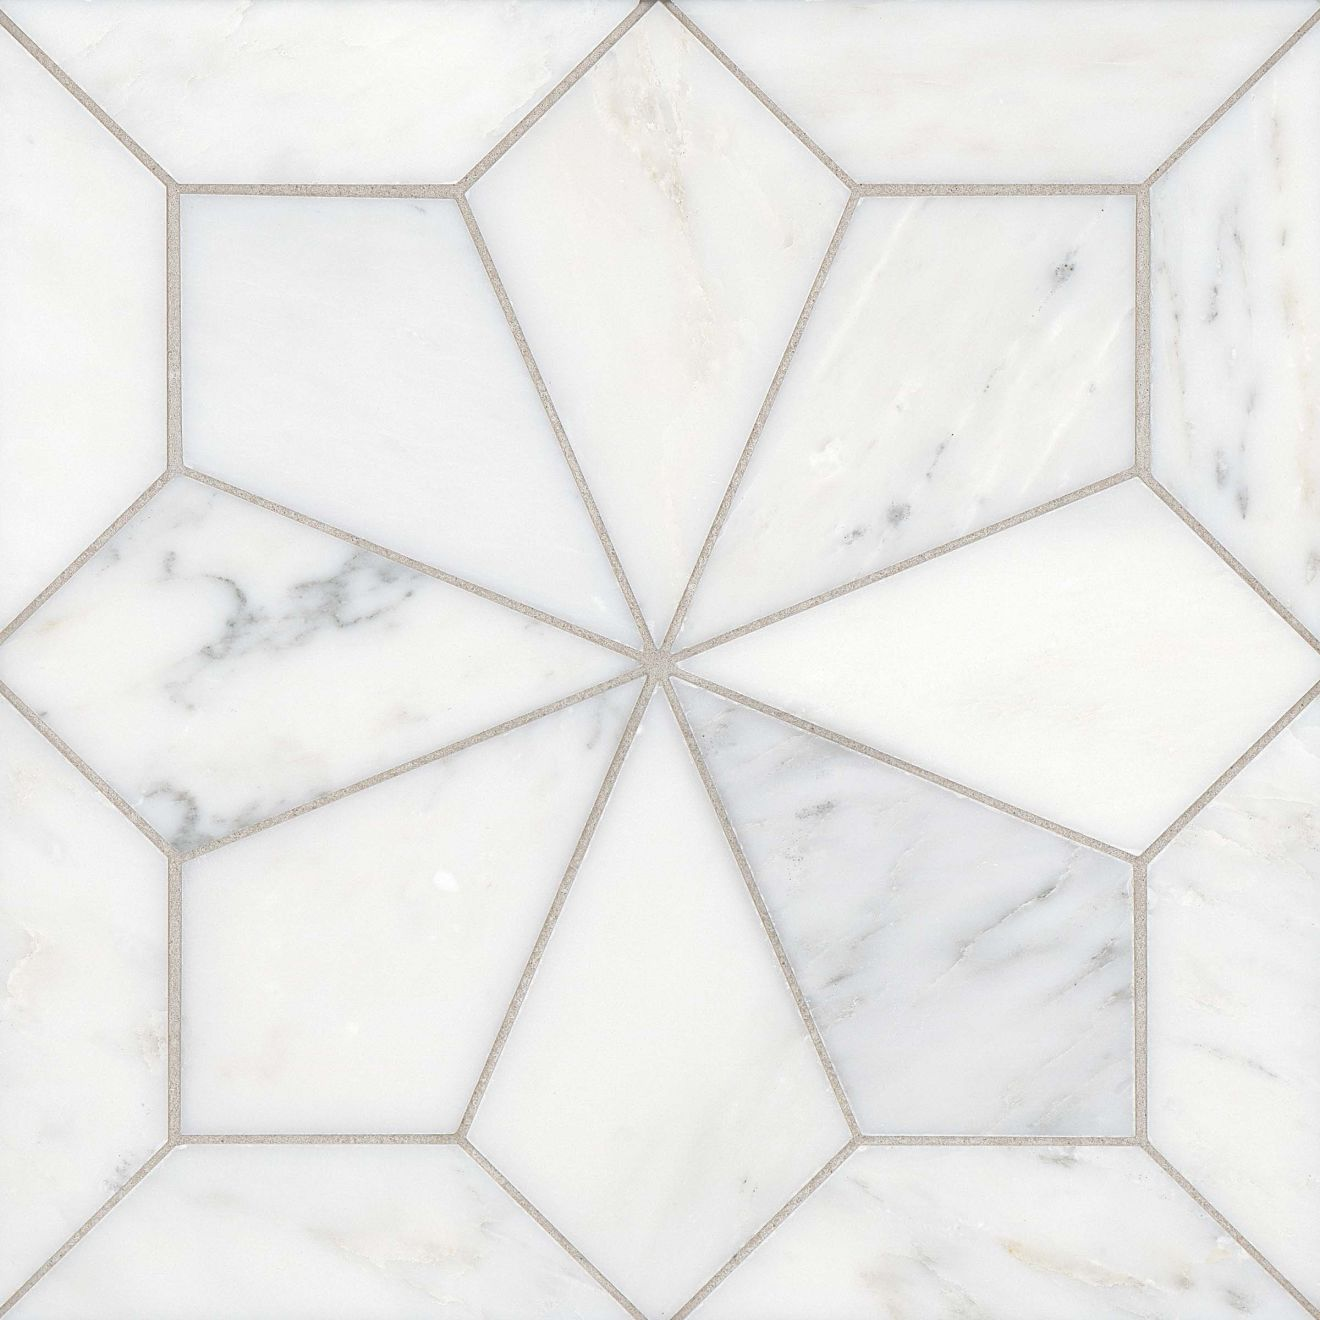 Blomma Floor & Wall Mosaic in Bianco